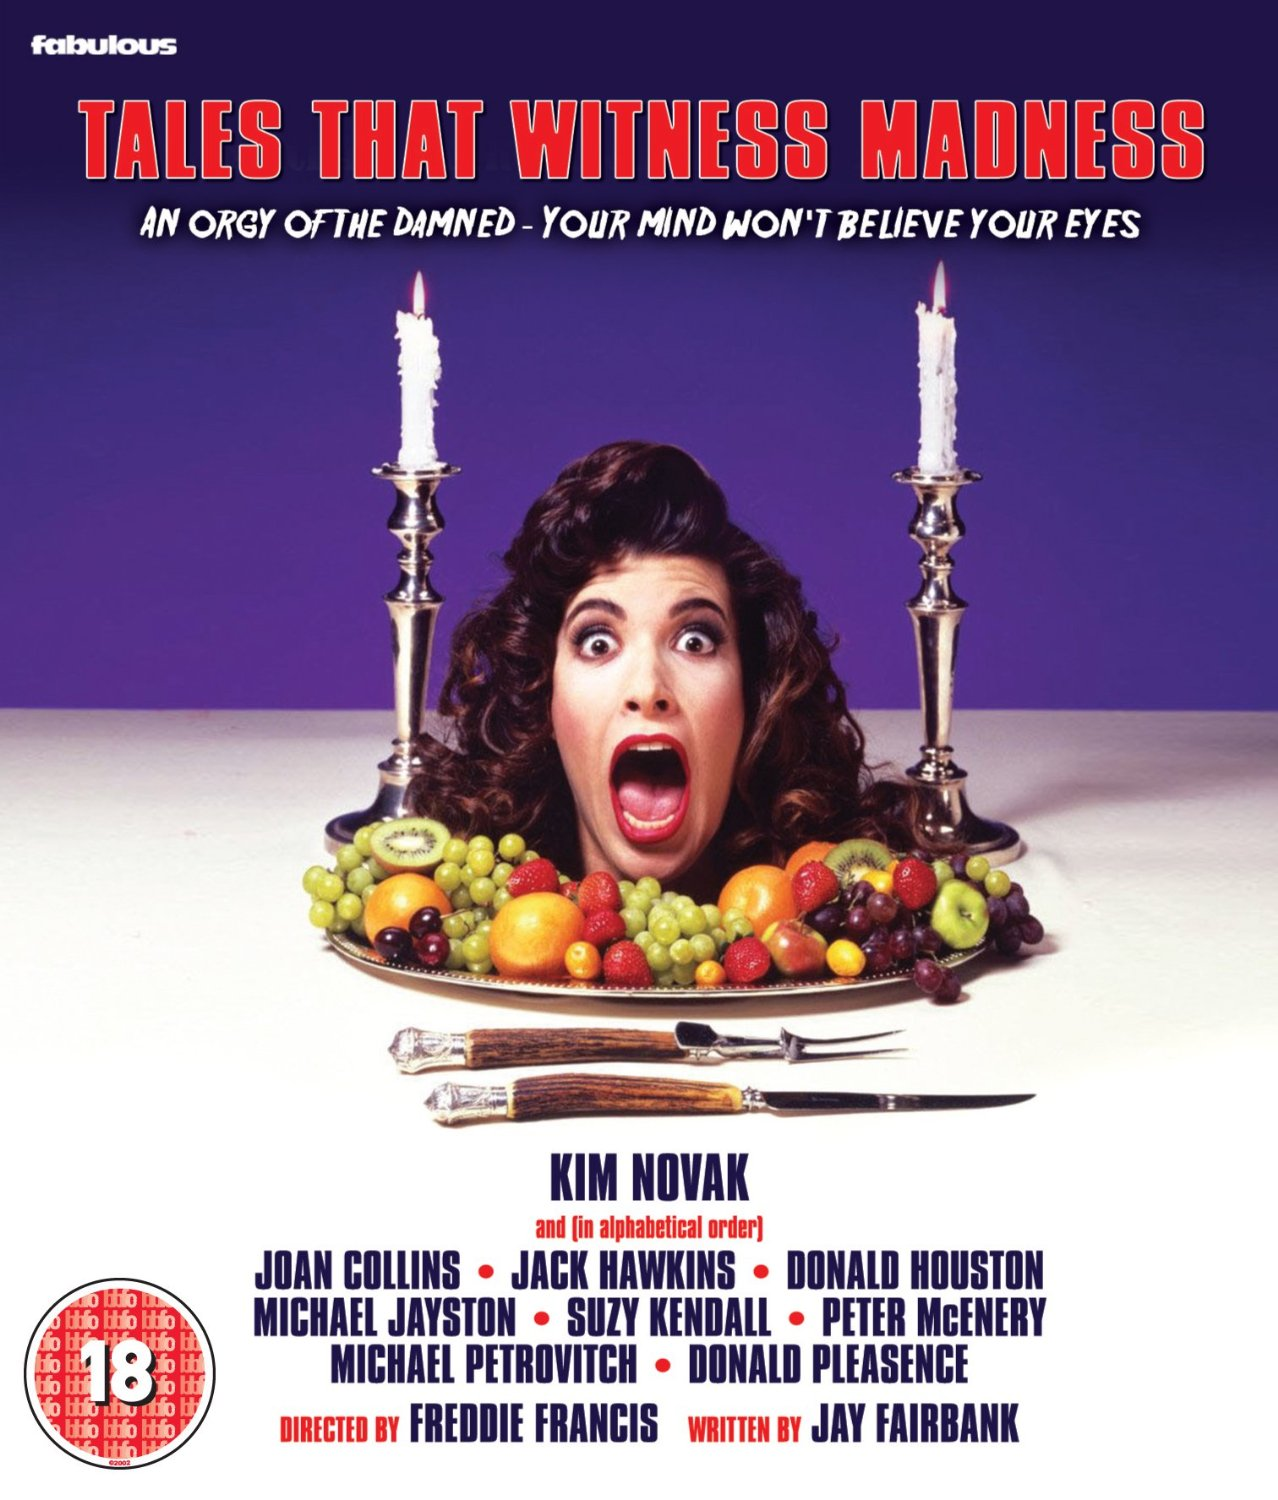 tales-that-witness-madness-poster